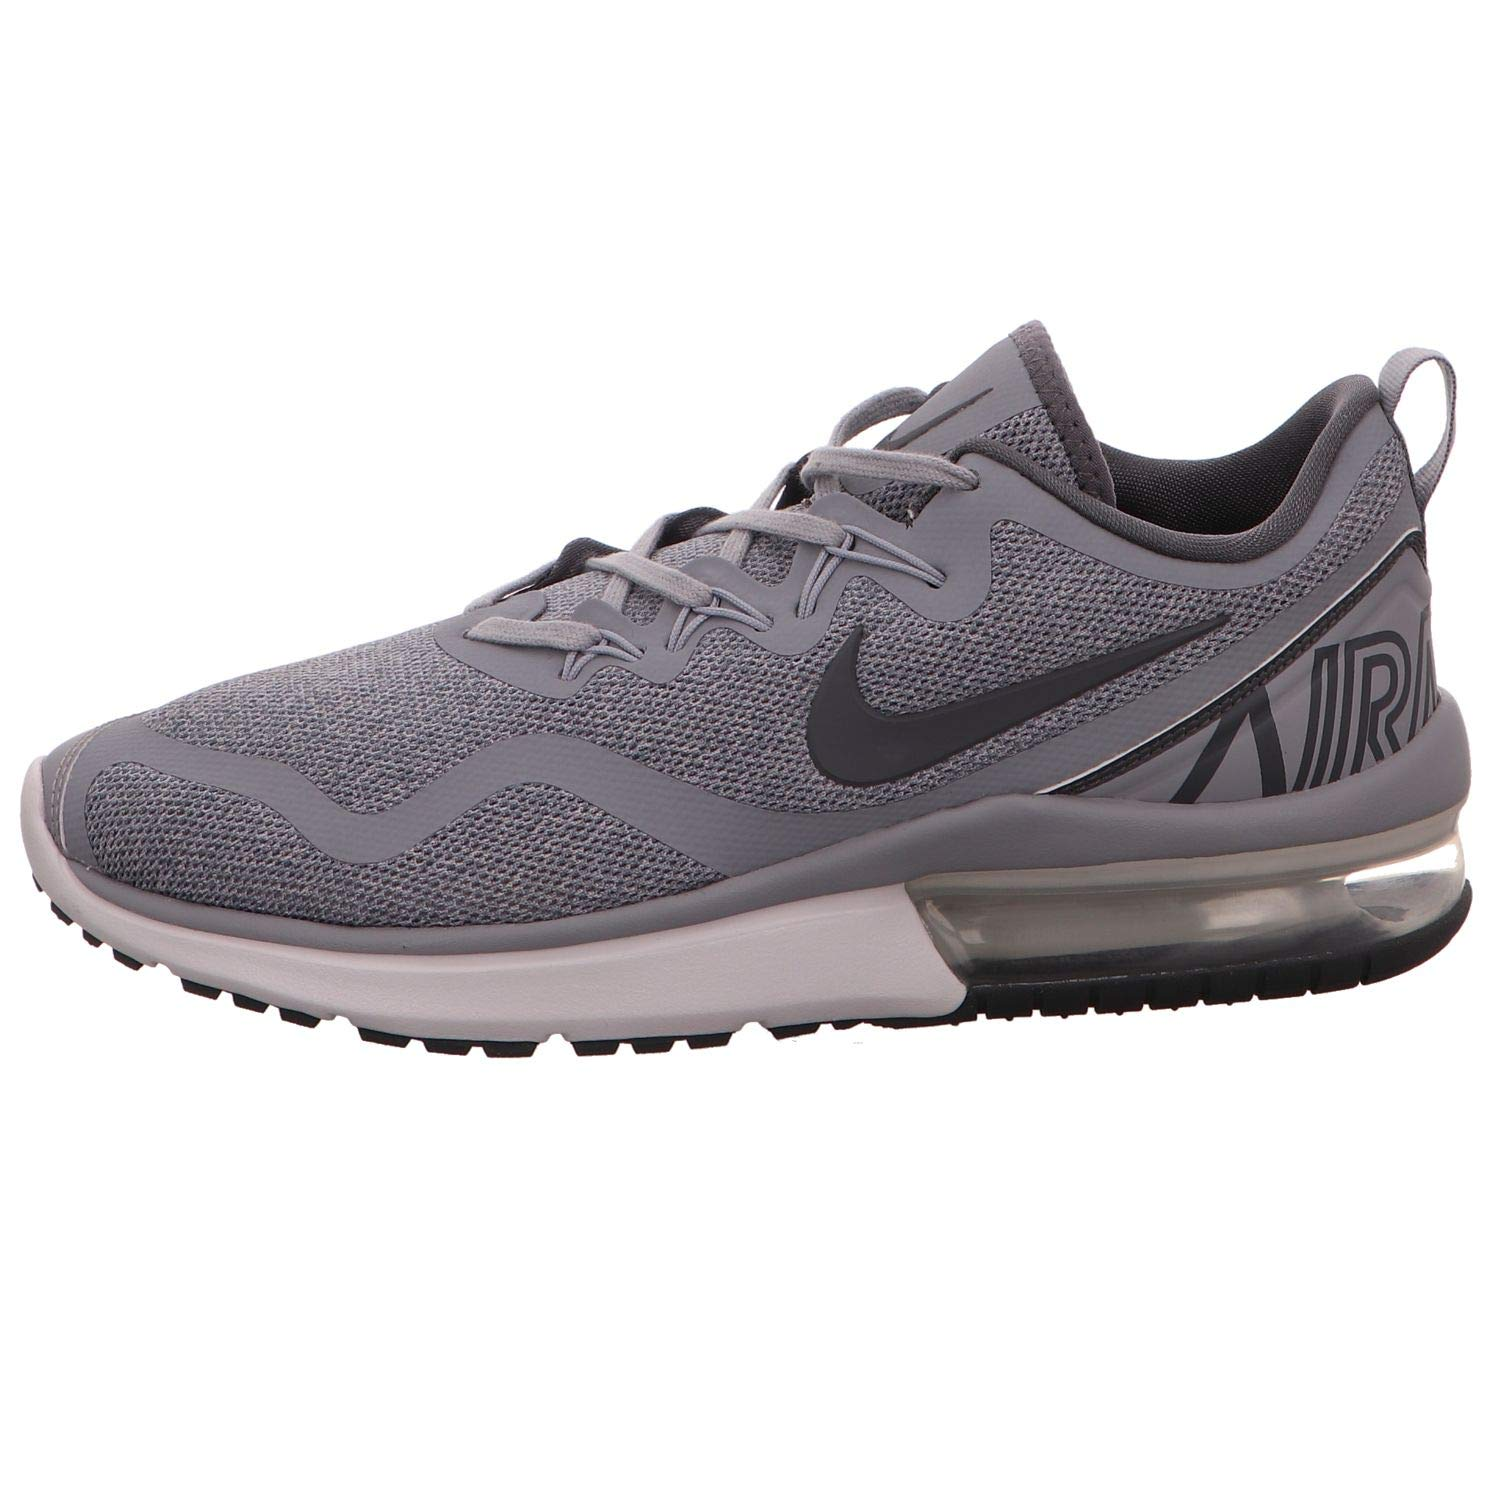 on sale c8430 f611e Nike Air Max Fury, Chaussures de Running Homme, Gris (Wolf DK Grey Stealth  004), 36.5 EU  Amazon.fr  Chaussures et Sacs